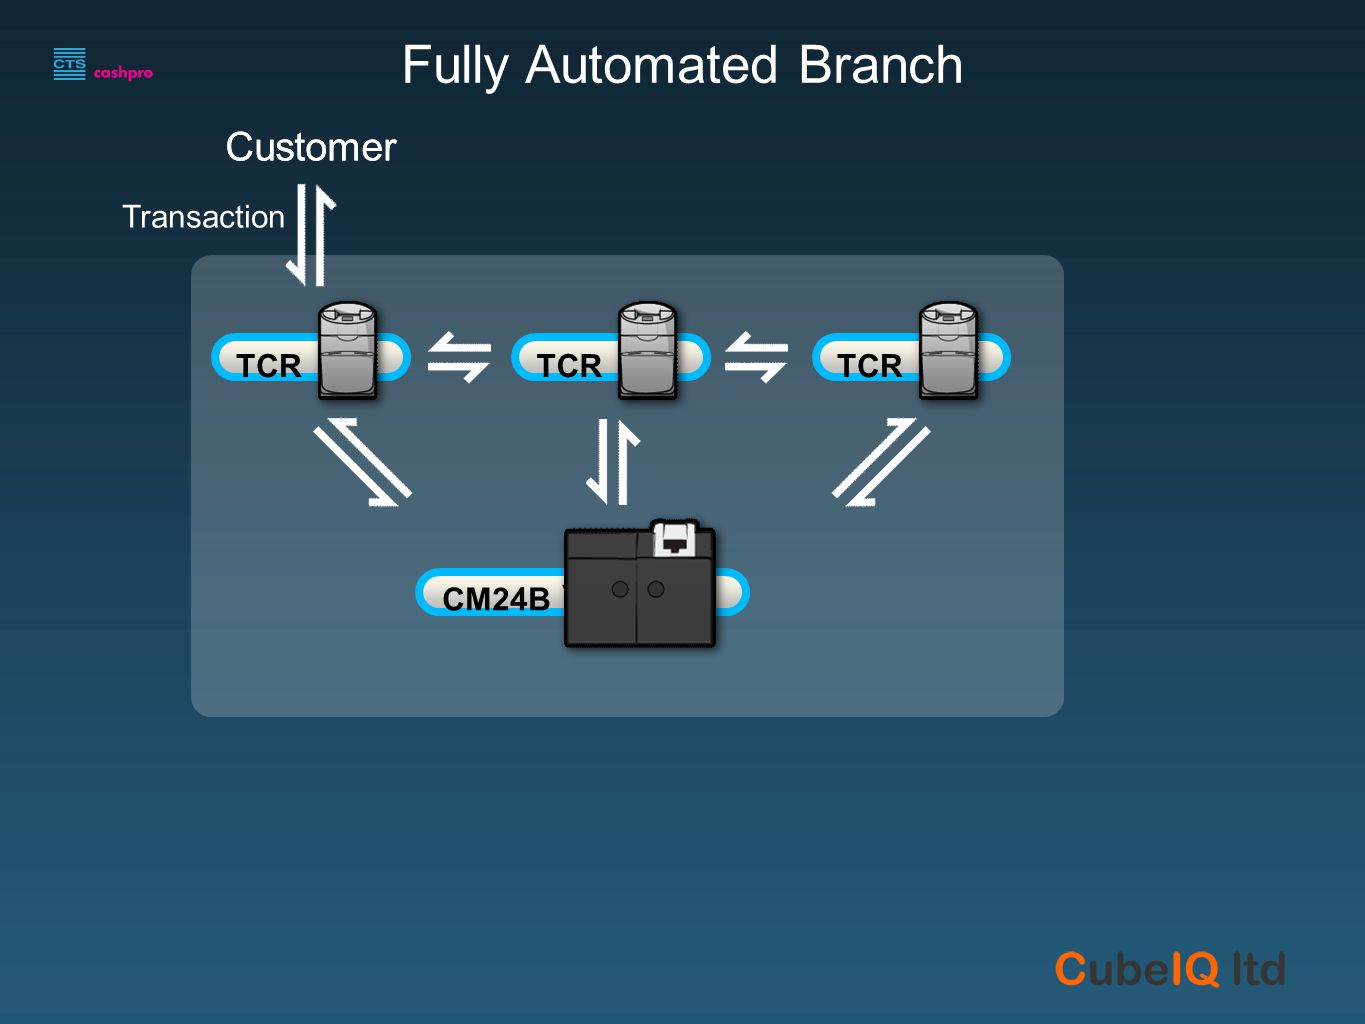 Cash Center Fully Automated Branch v\ CM24B Customer Transaction TCR